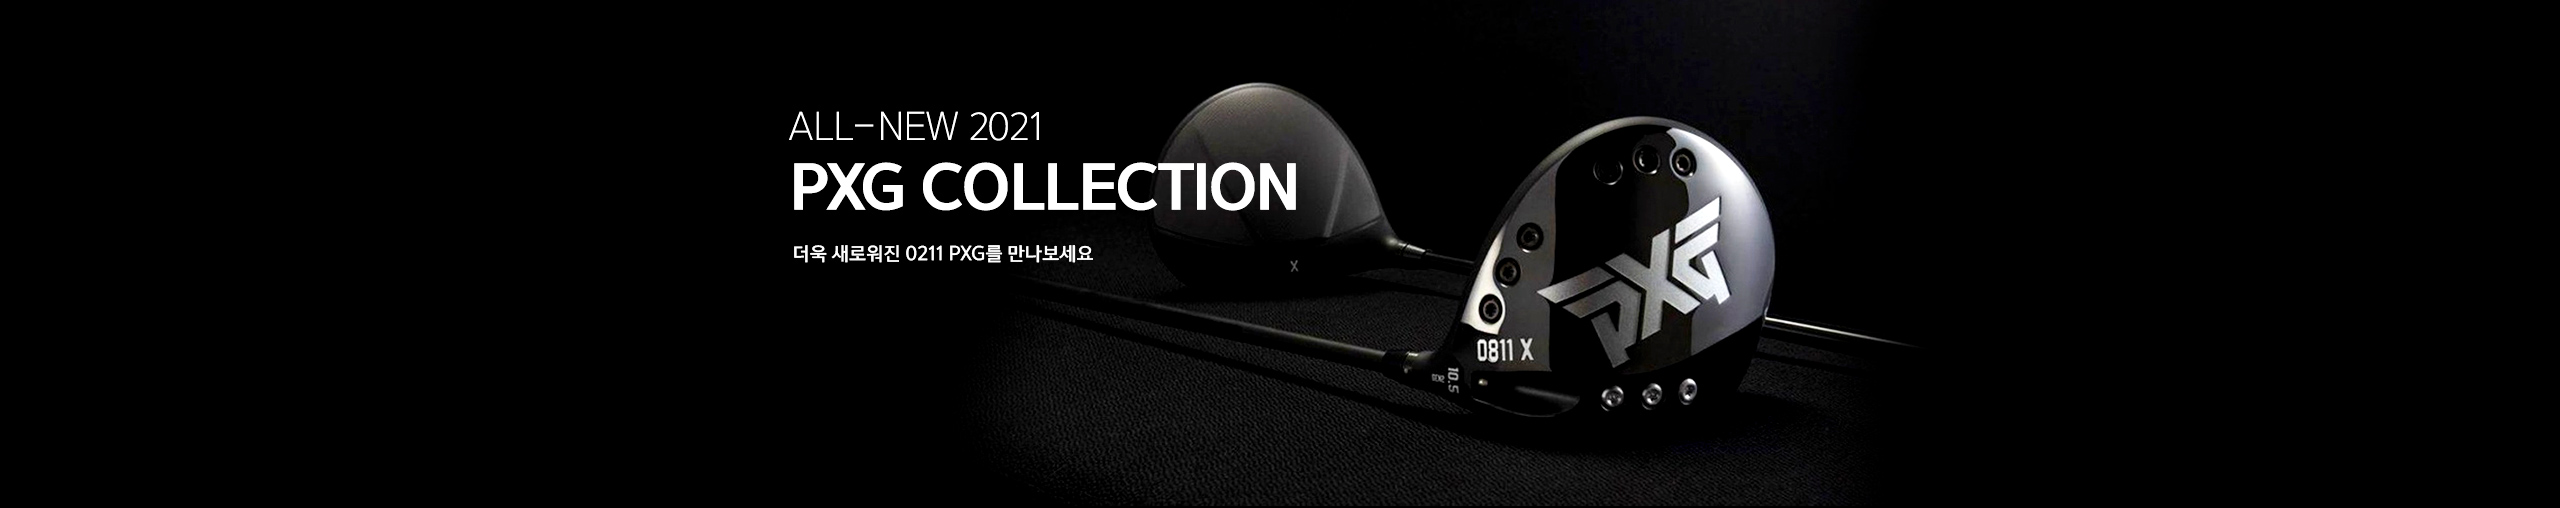 PXG COLLECTION